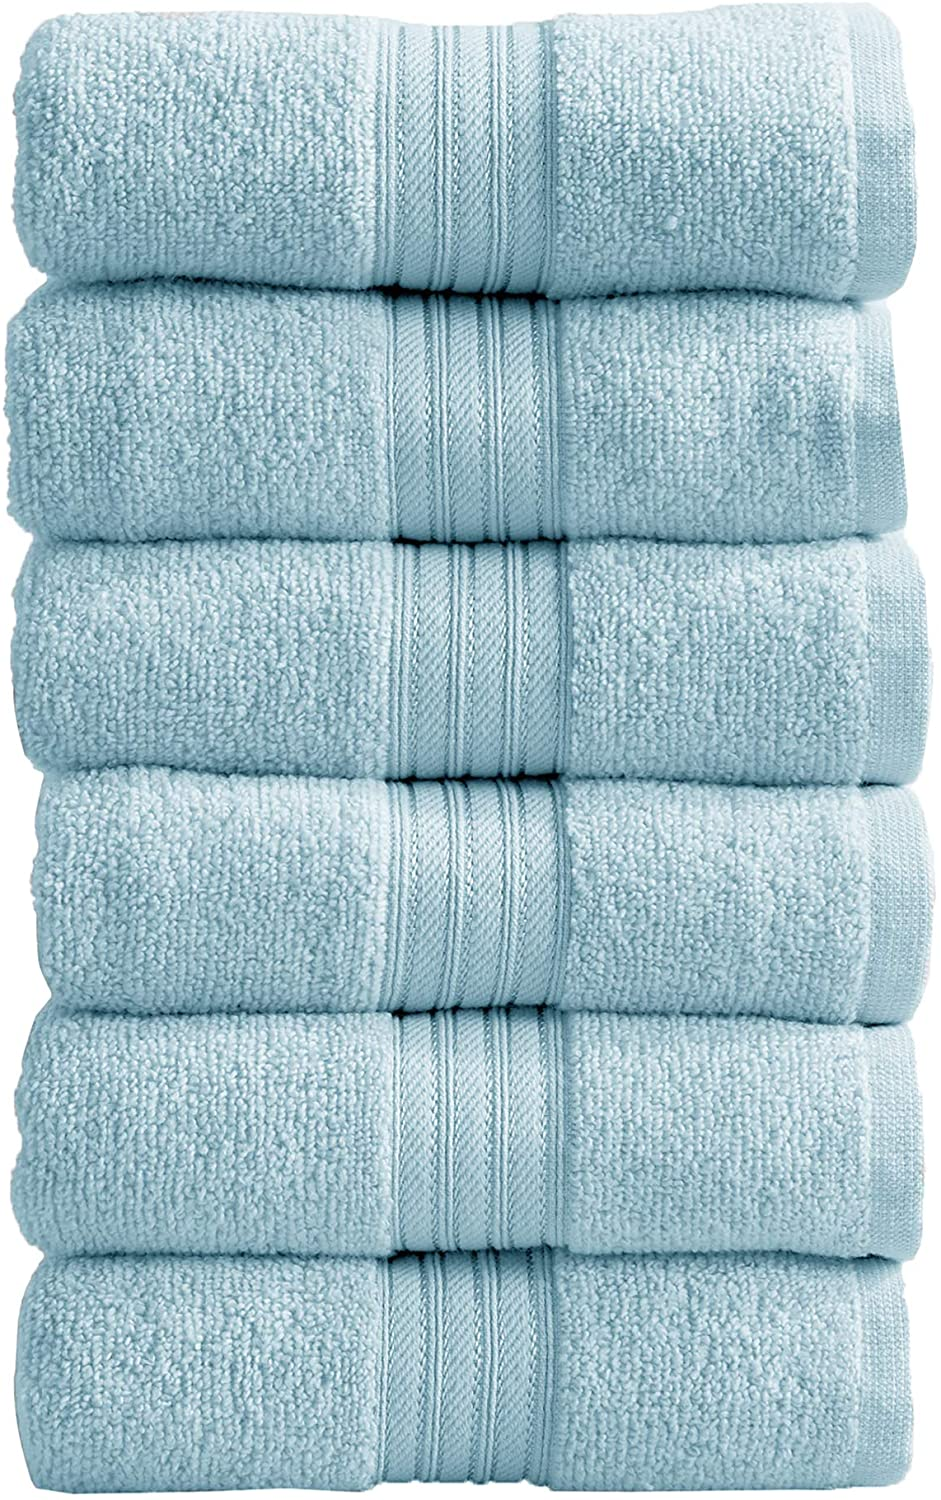 6-Pack Hand Towel Set. 100% Cotton Hand Towels for Bathroom. Absorbent Quick-Dry Plush Bathroom Hand Towels. Cooper Collection. (Hand Towels, Spa Blue)